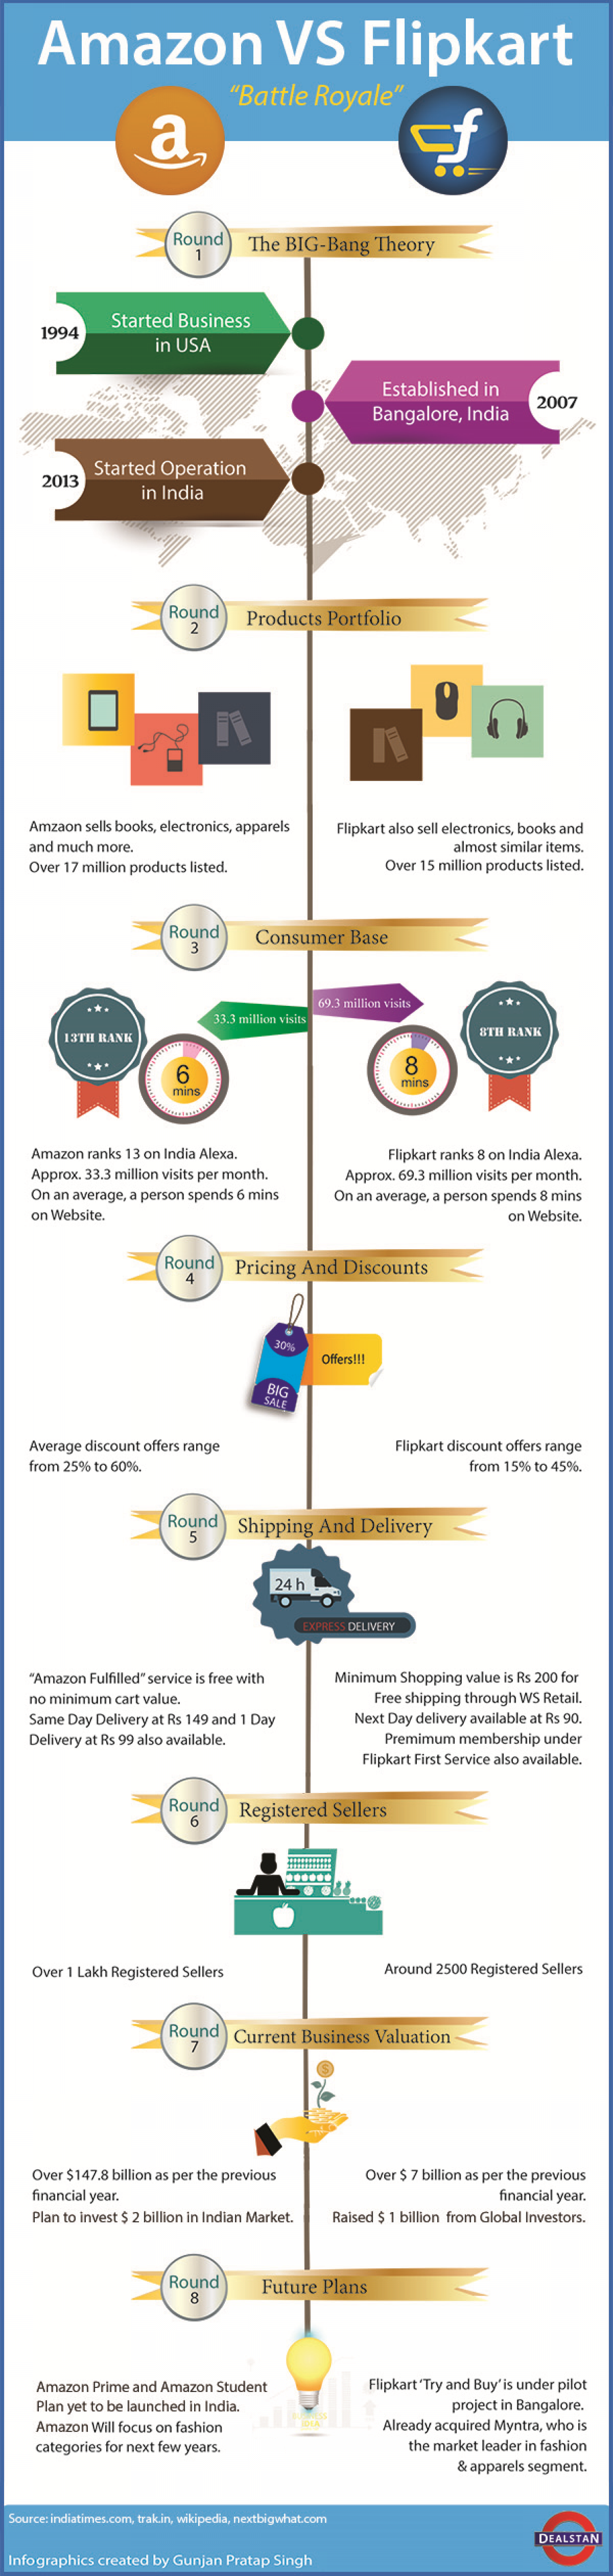 Amazon VS Flipkart - A Detailed Comparision Infographic